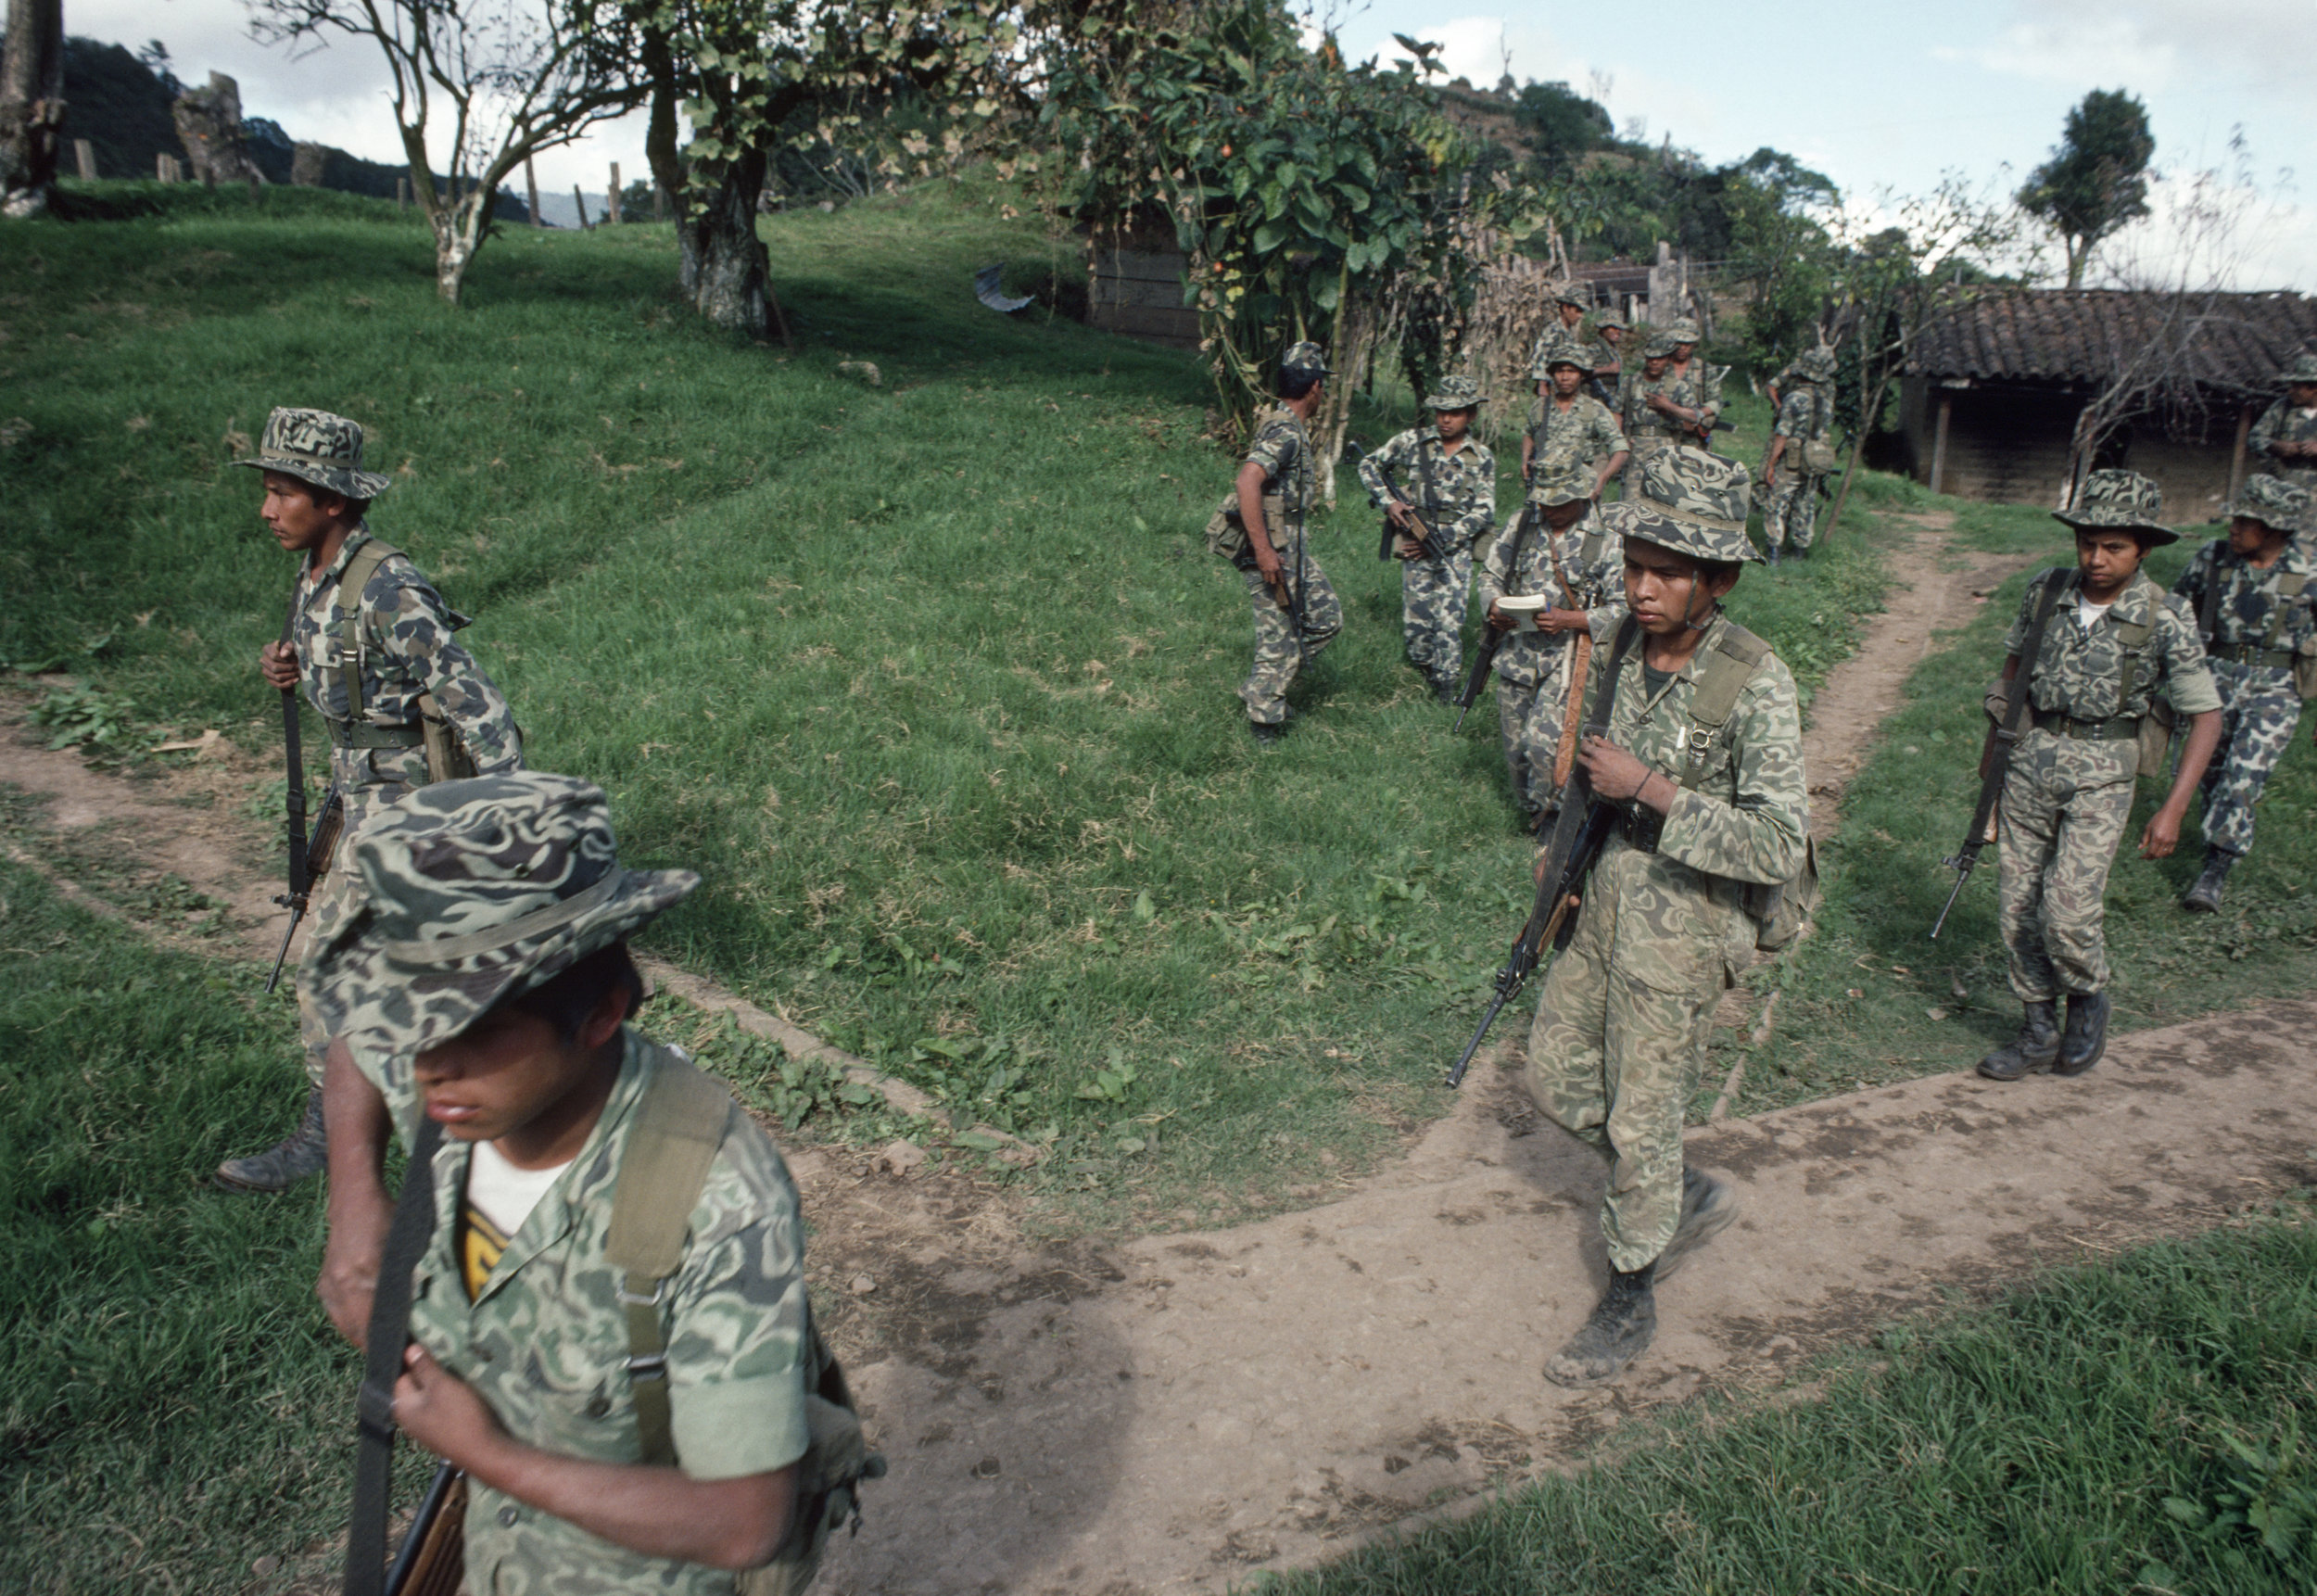 Guatemalan army soldiers armed with Israeli-supplied Galil assault rifles move out in search of leftist insurgents that attacked the army base one day earlier on January 19, 1982 in San Juan Cotzal, Guatemala, January 20, 1982.